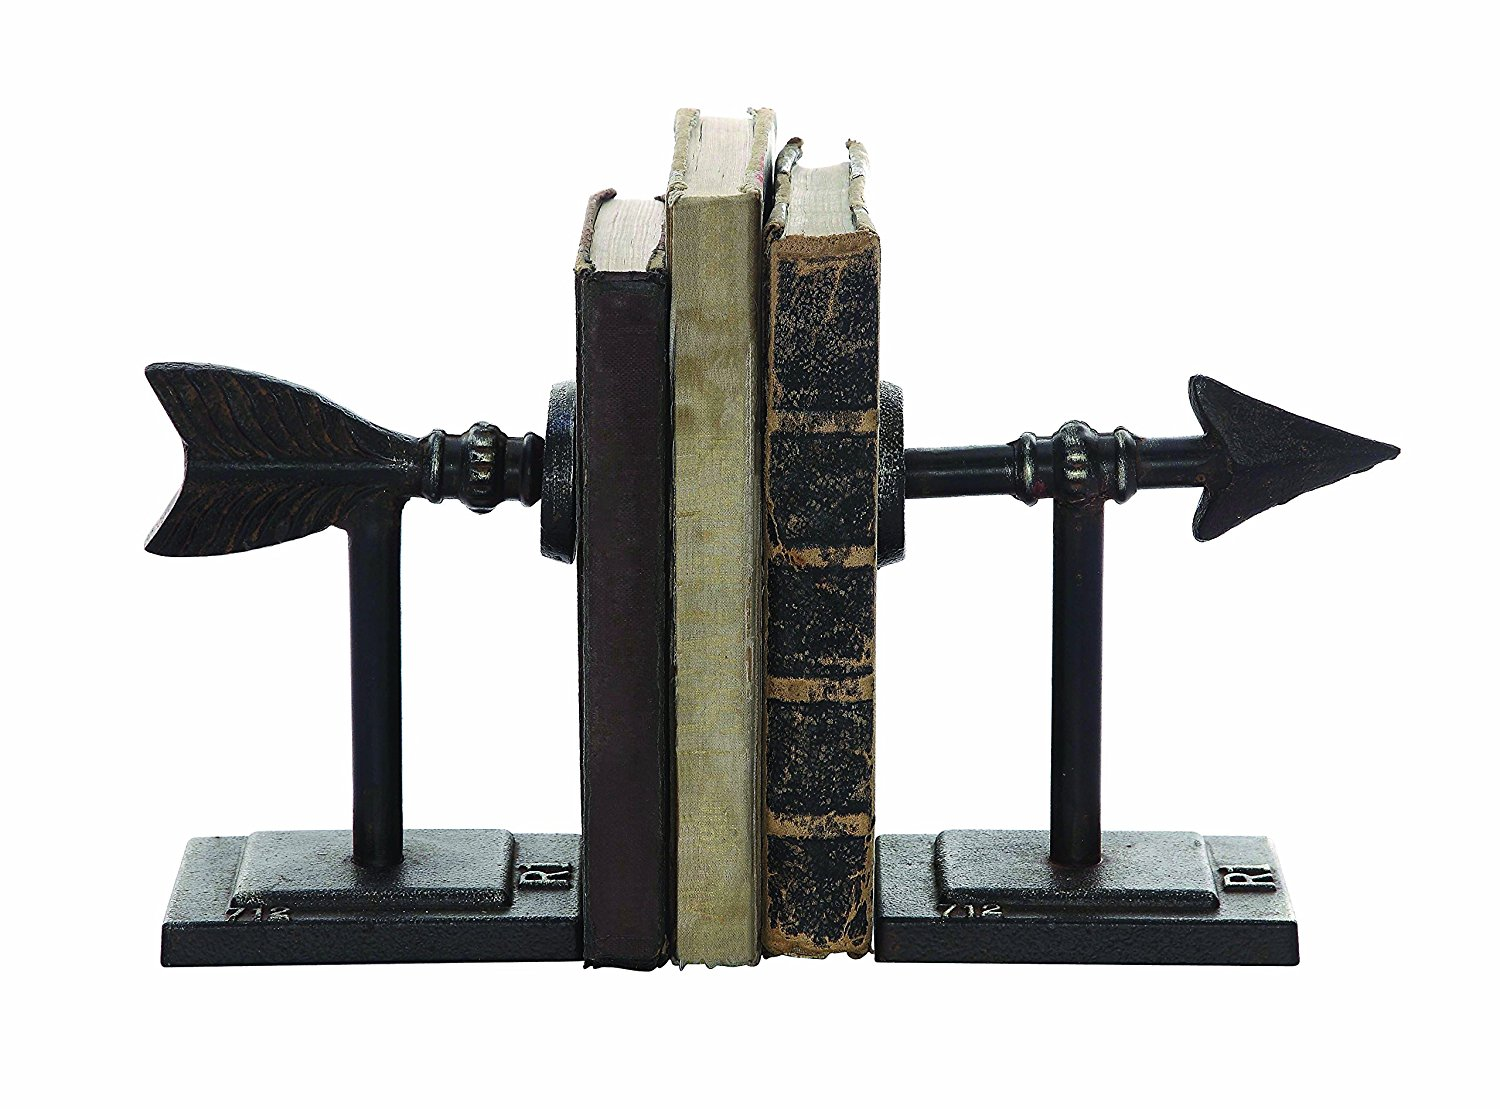 Bookends that make sense of the last message